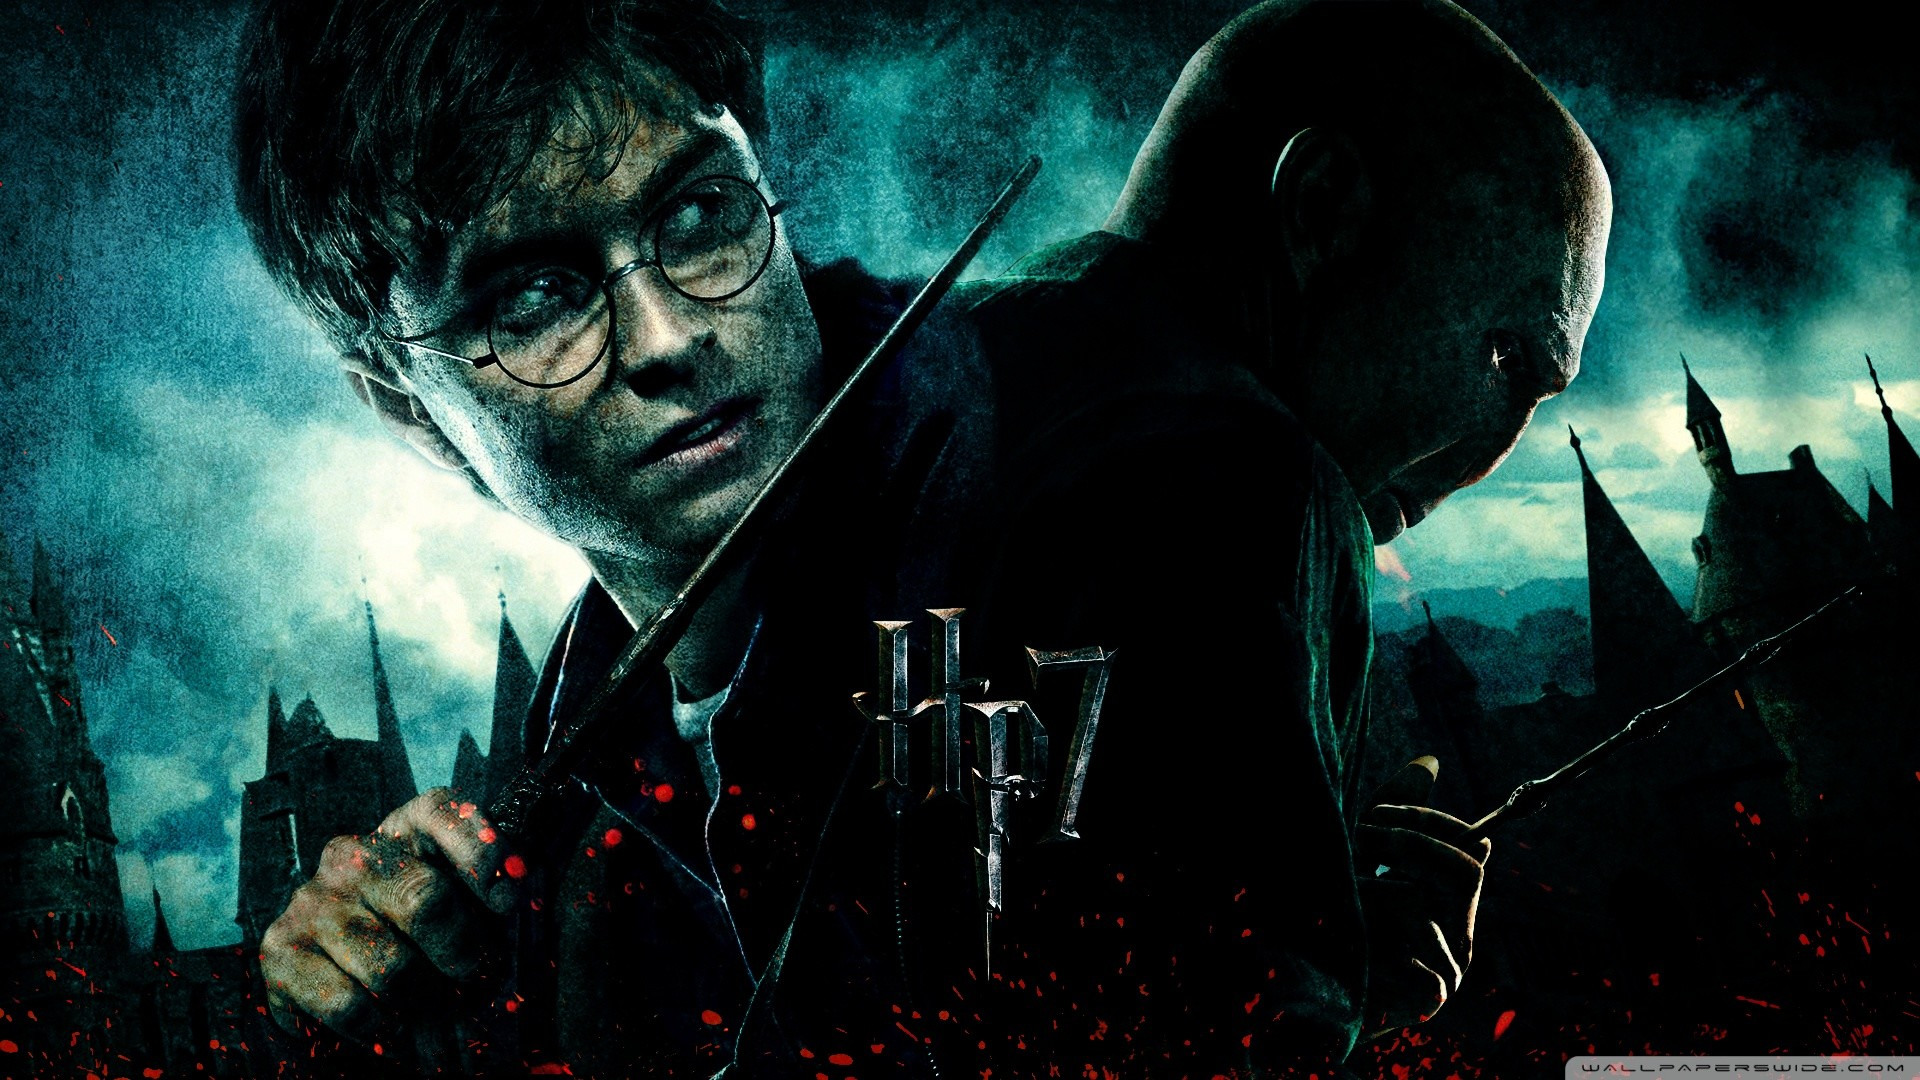 Cool Wallpaper Harry Potter Half Blood Prince - 135391  Photograph_234224.jpg